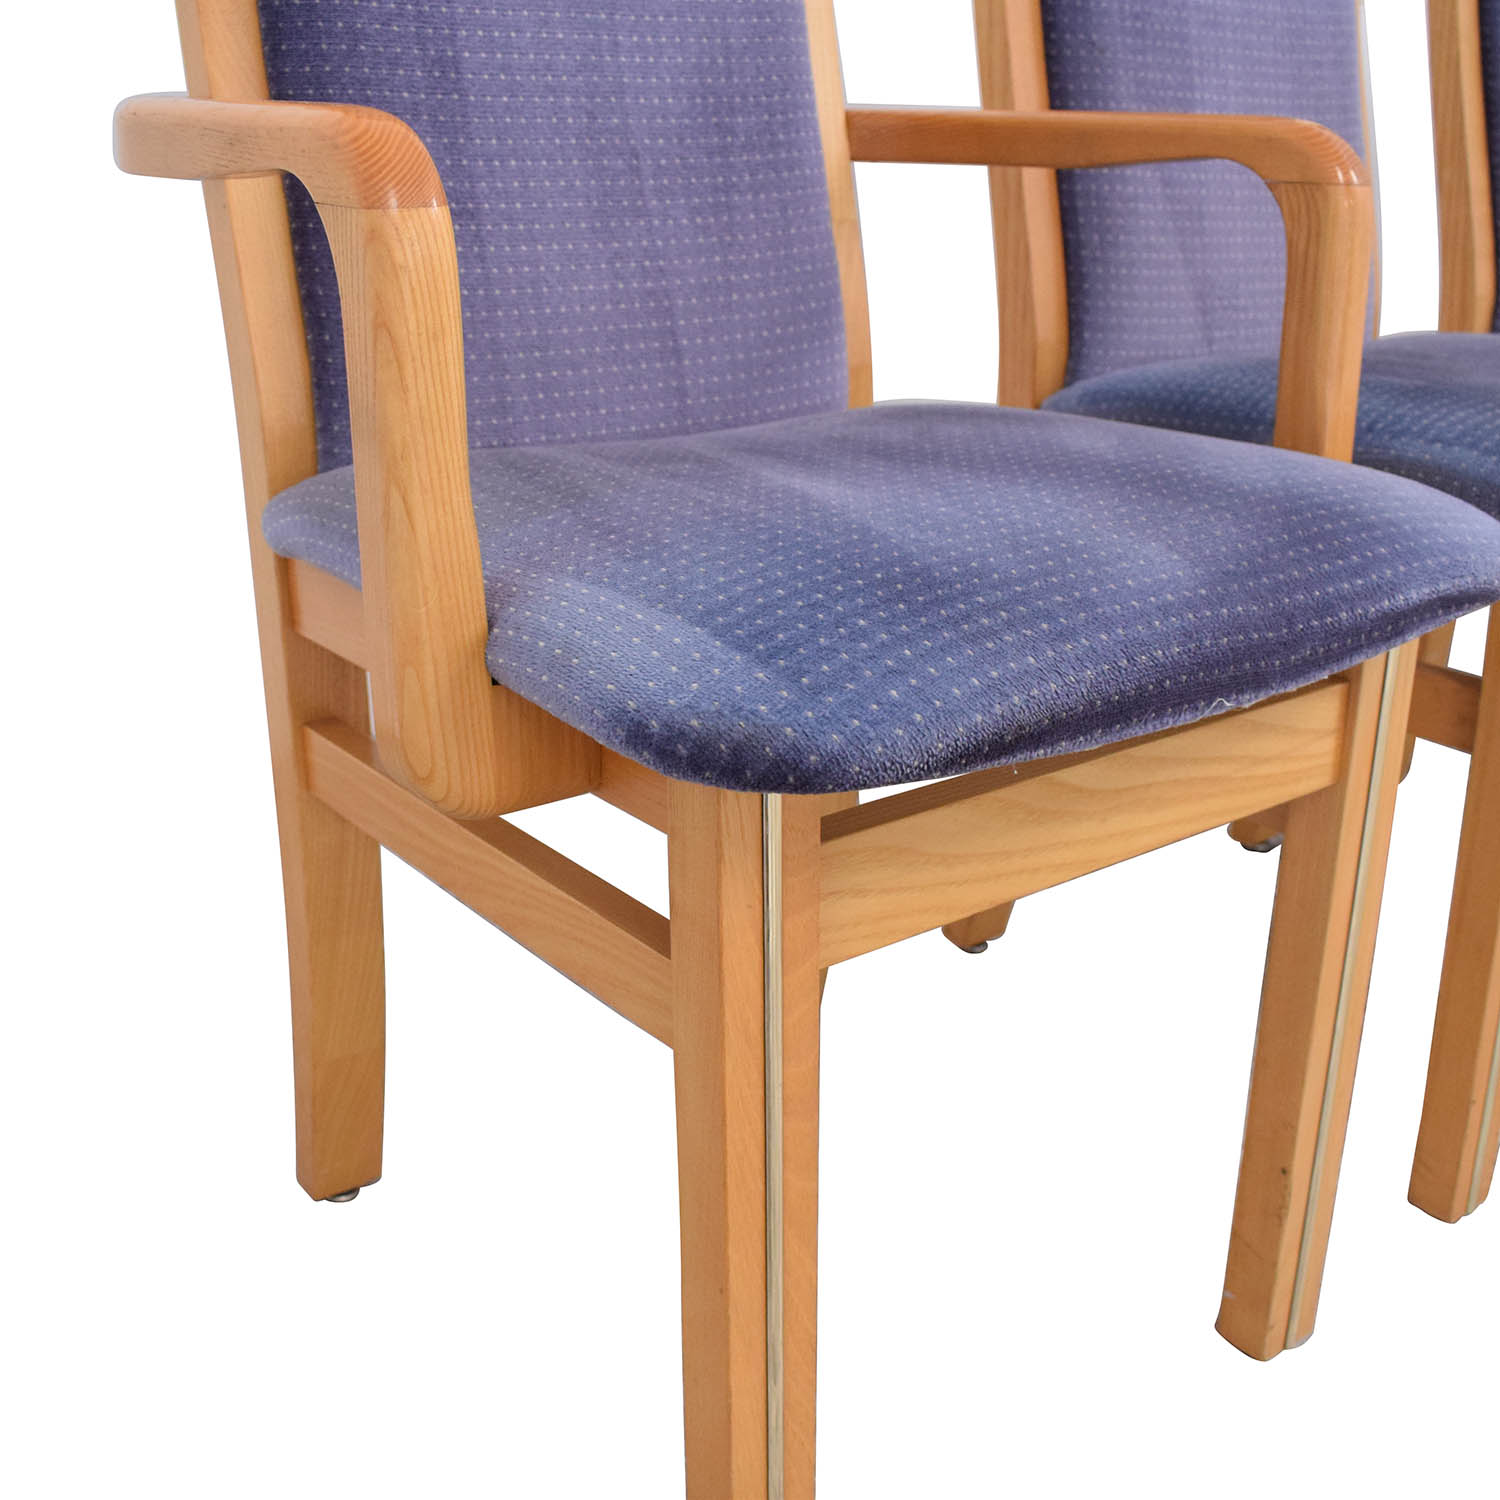 High Back Upholstered Dining Chairs dimensions